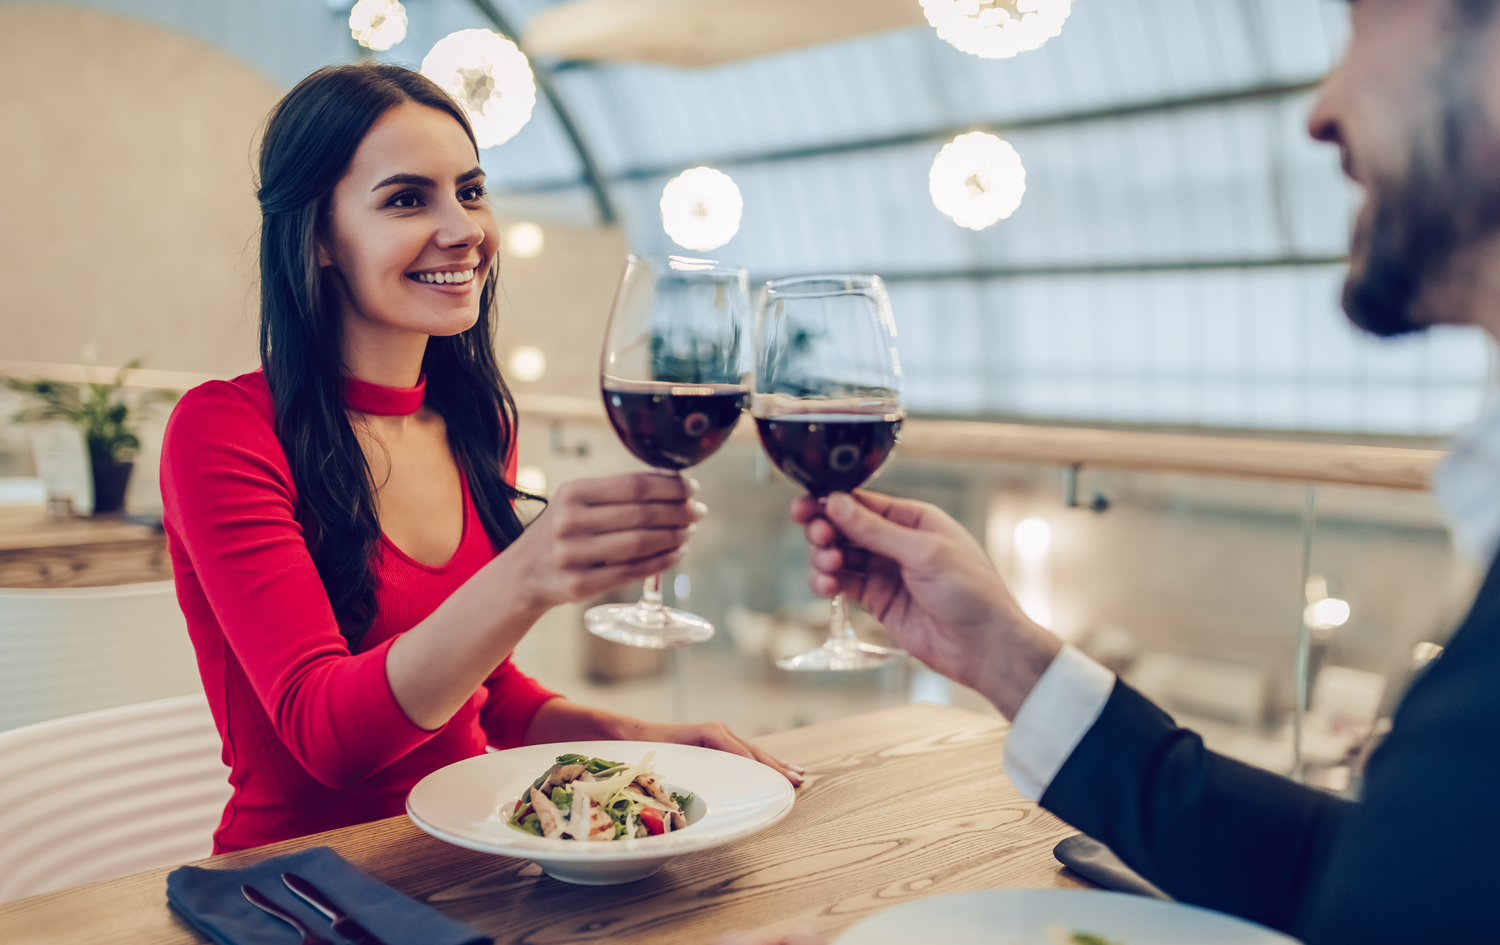 A young brunette woman in red and her male date clinking glasses of red wine at a fine dining restaurant